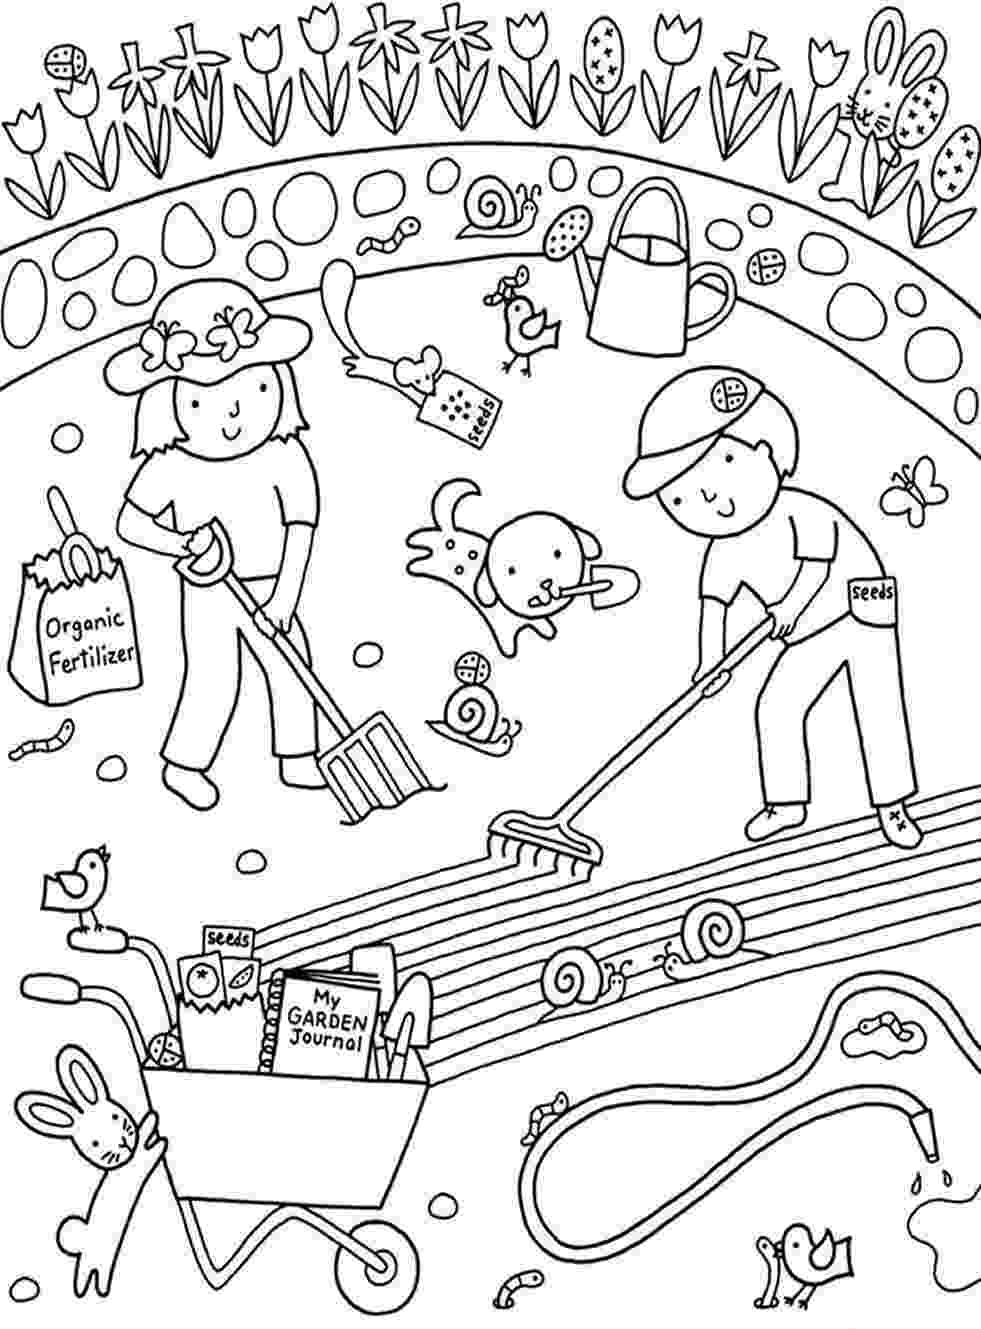 gardening colouring sheets kids gardening coloring pages free colouring pictures to gardening colouring sheets